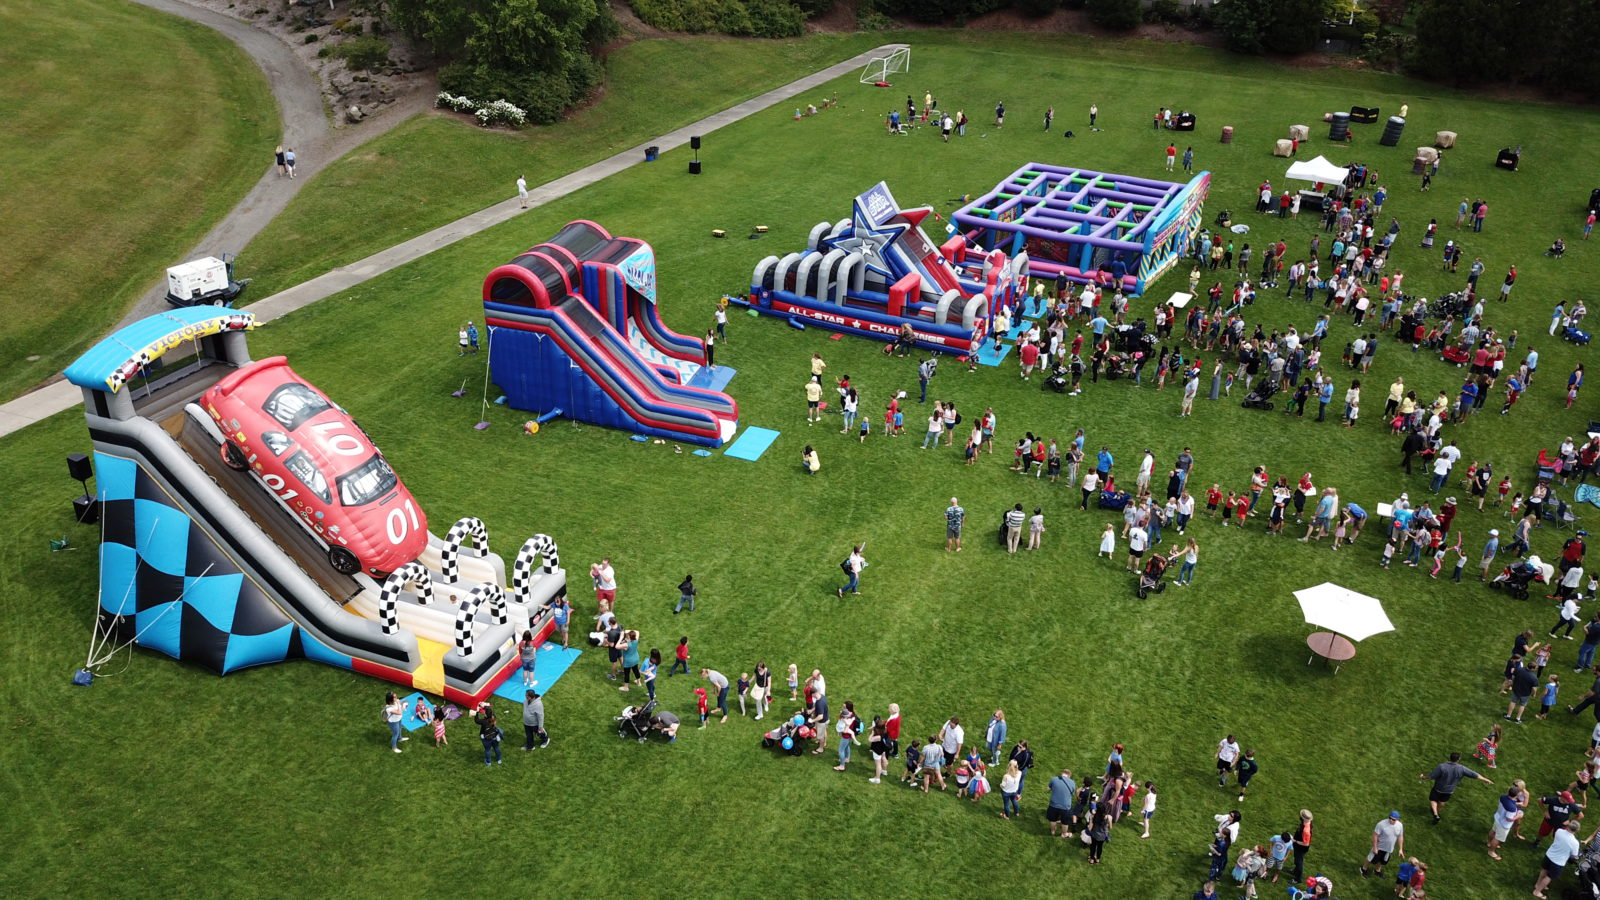 Outdoor Corporate Events